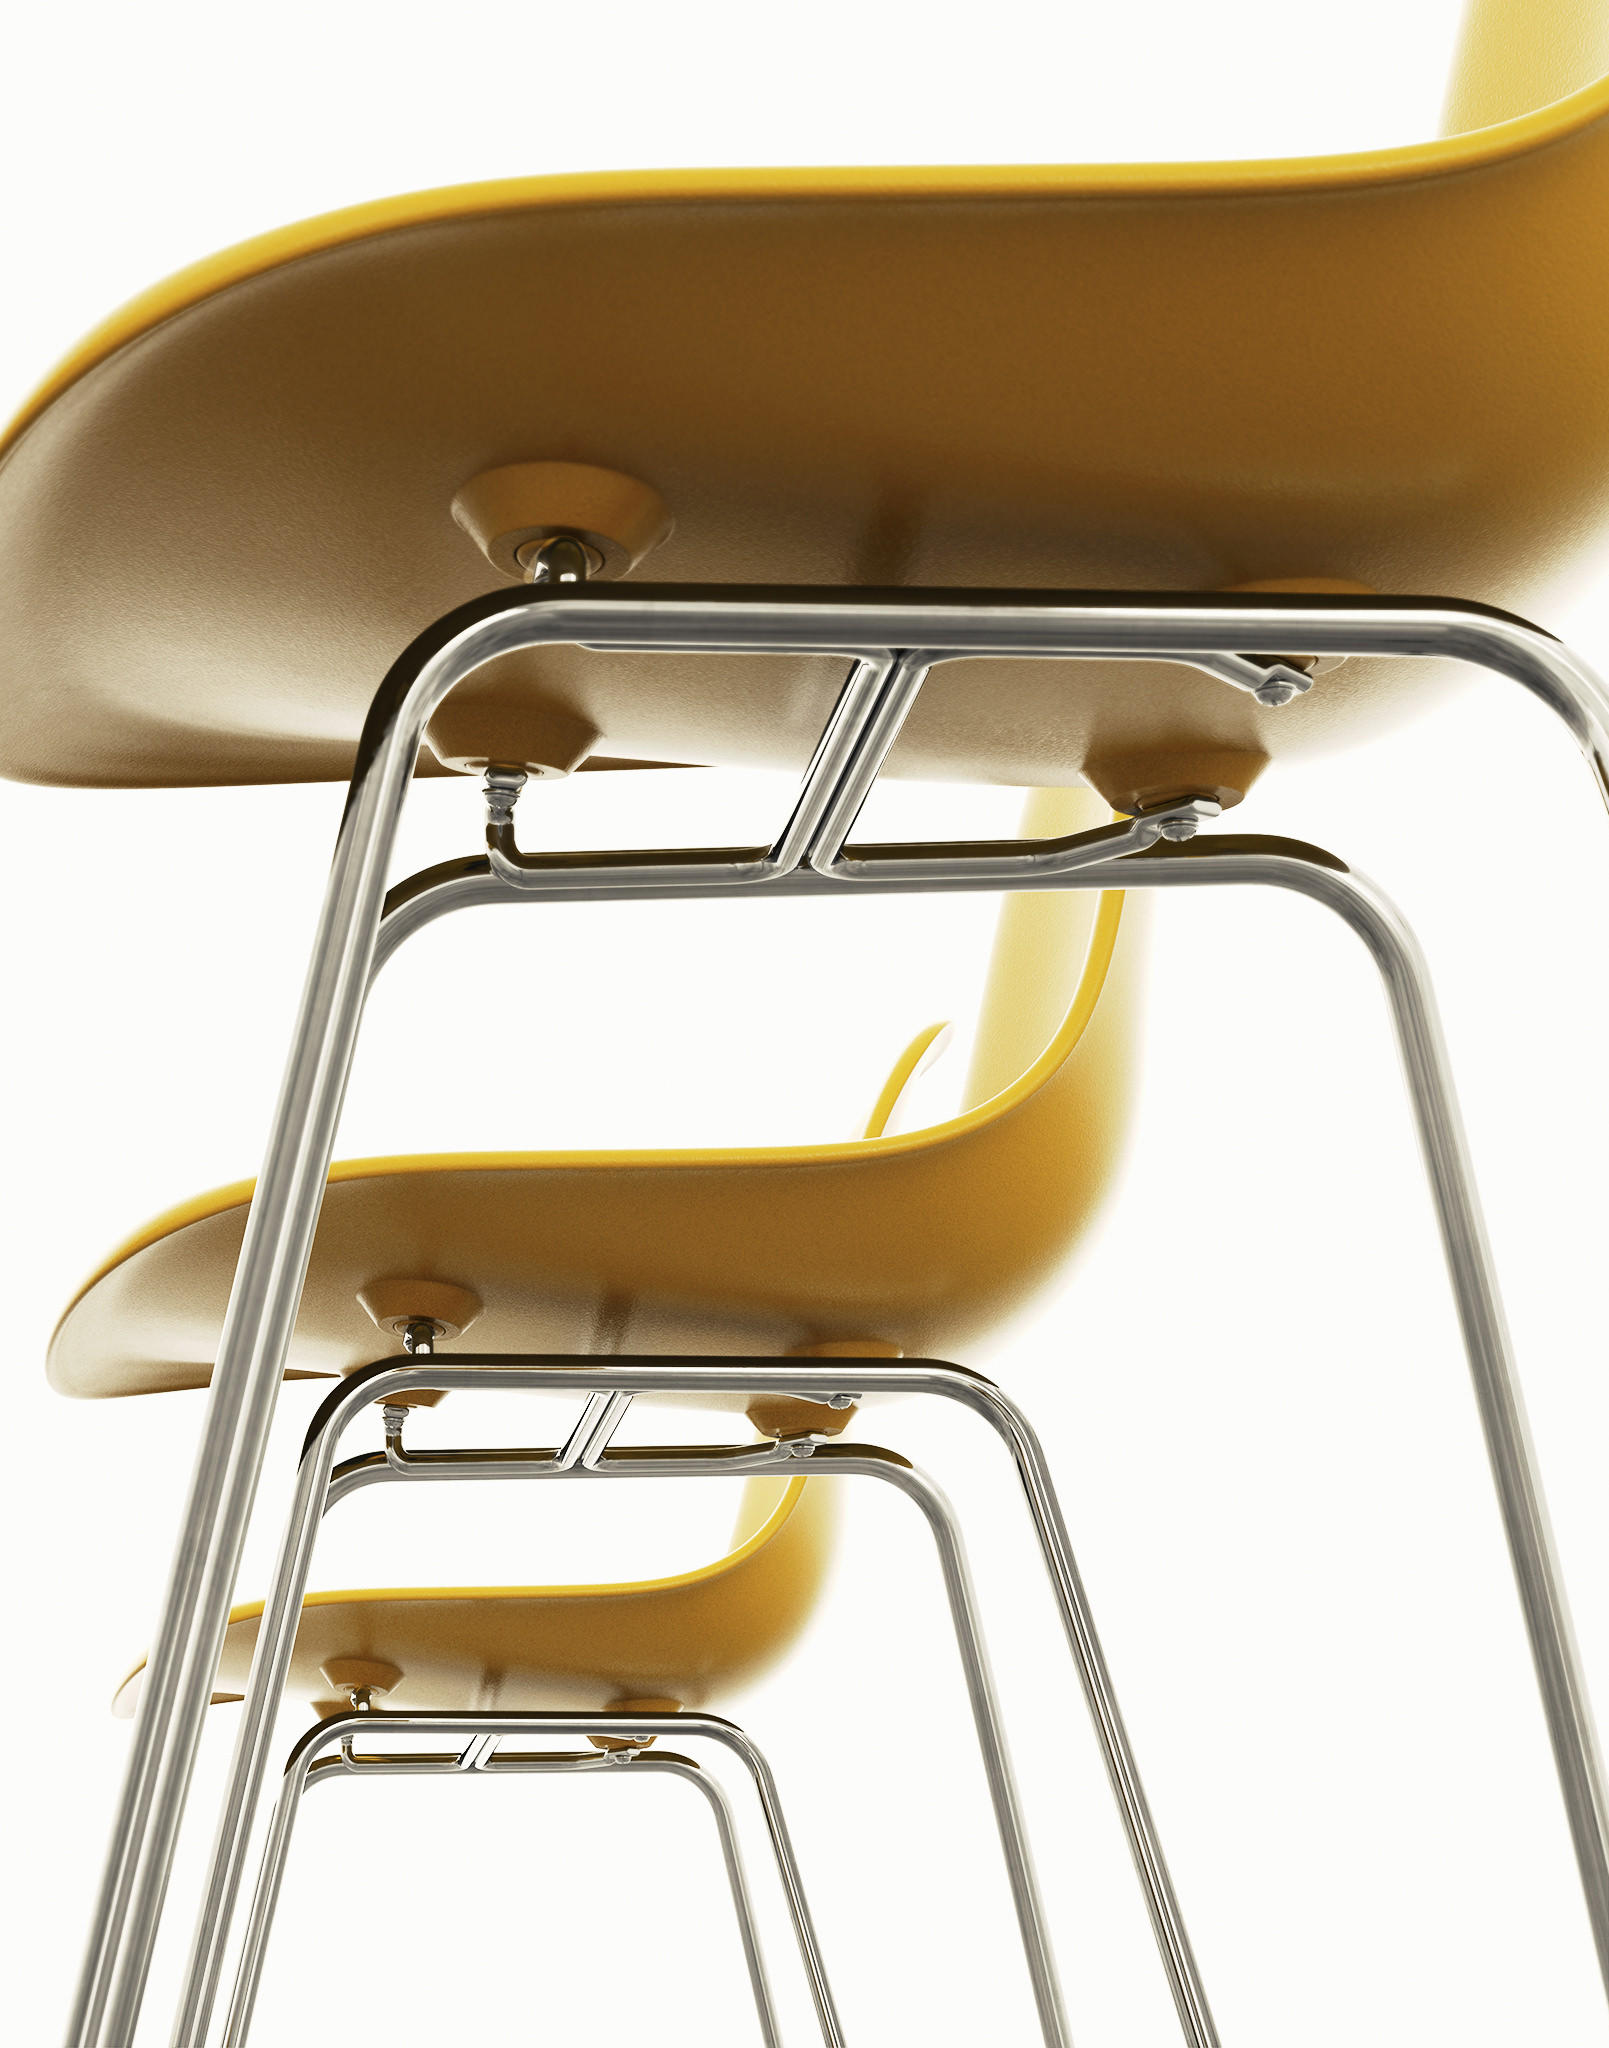 030Eames_Yellow.jpg